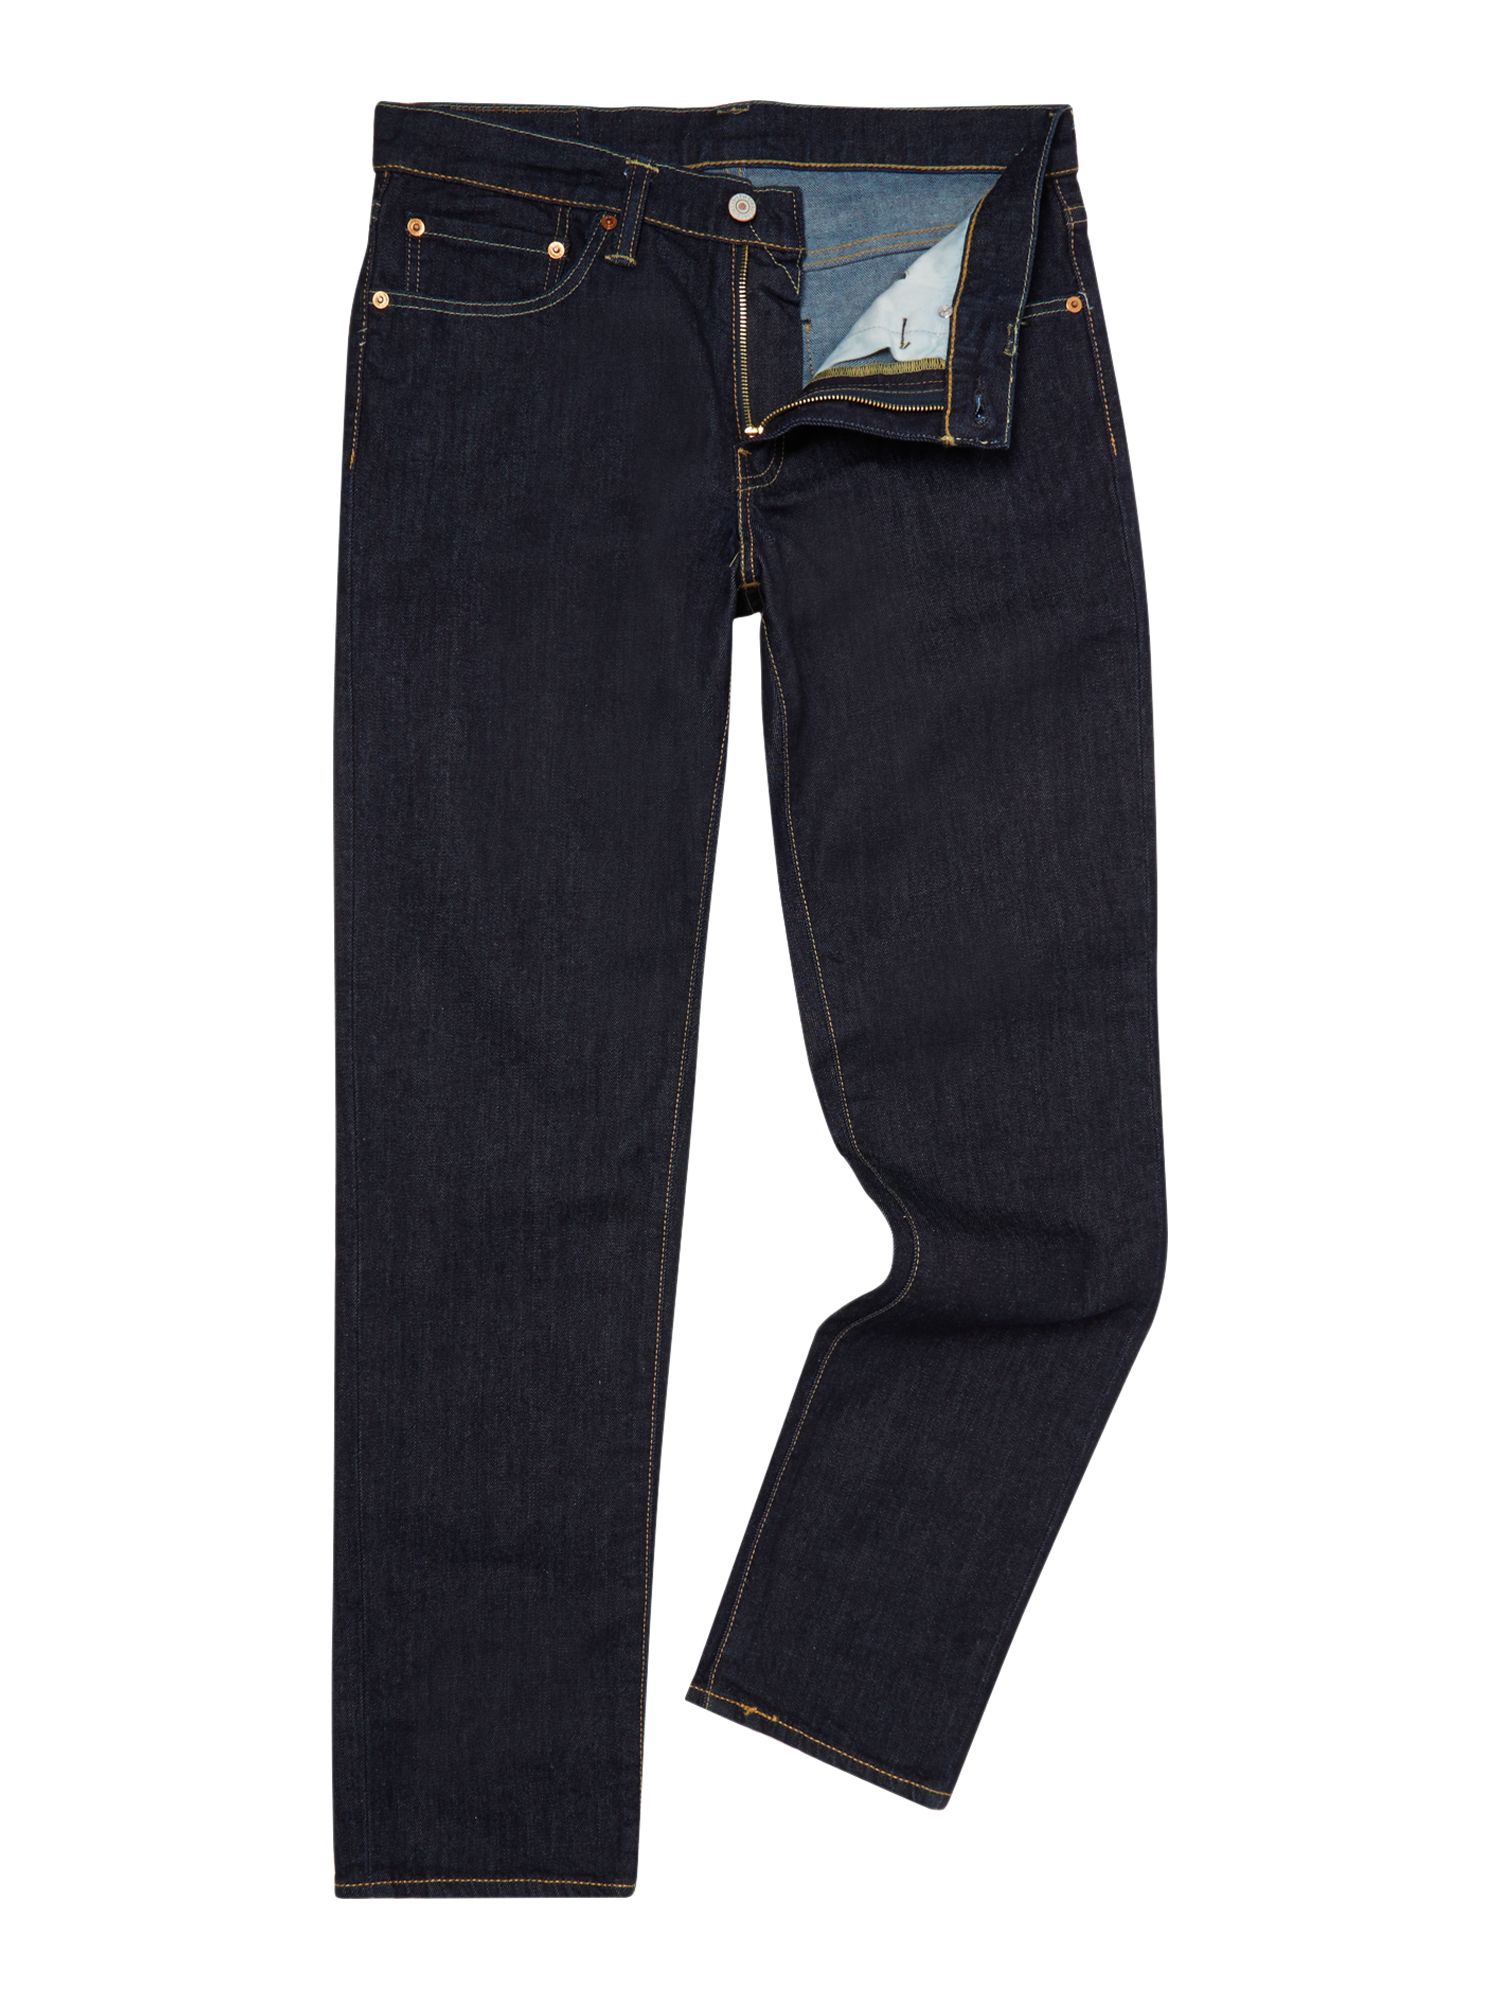 Slim-fit jeans in washed indigo denim BOSS Authentic Sale Online Clearance Online Official Site Sale Online Collections For Sale Pre Order Cheap Price FWZOZNXUWk